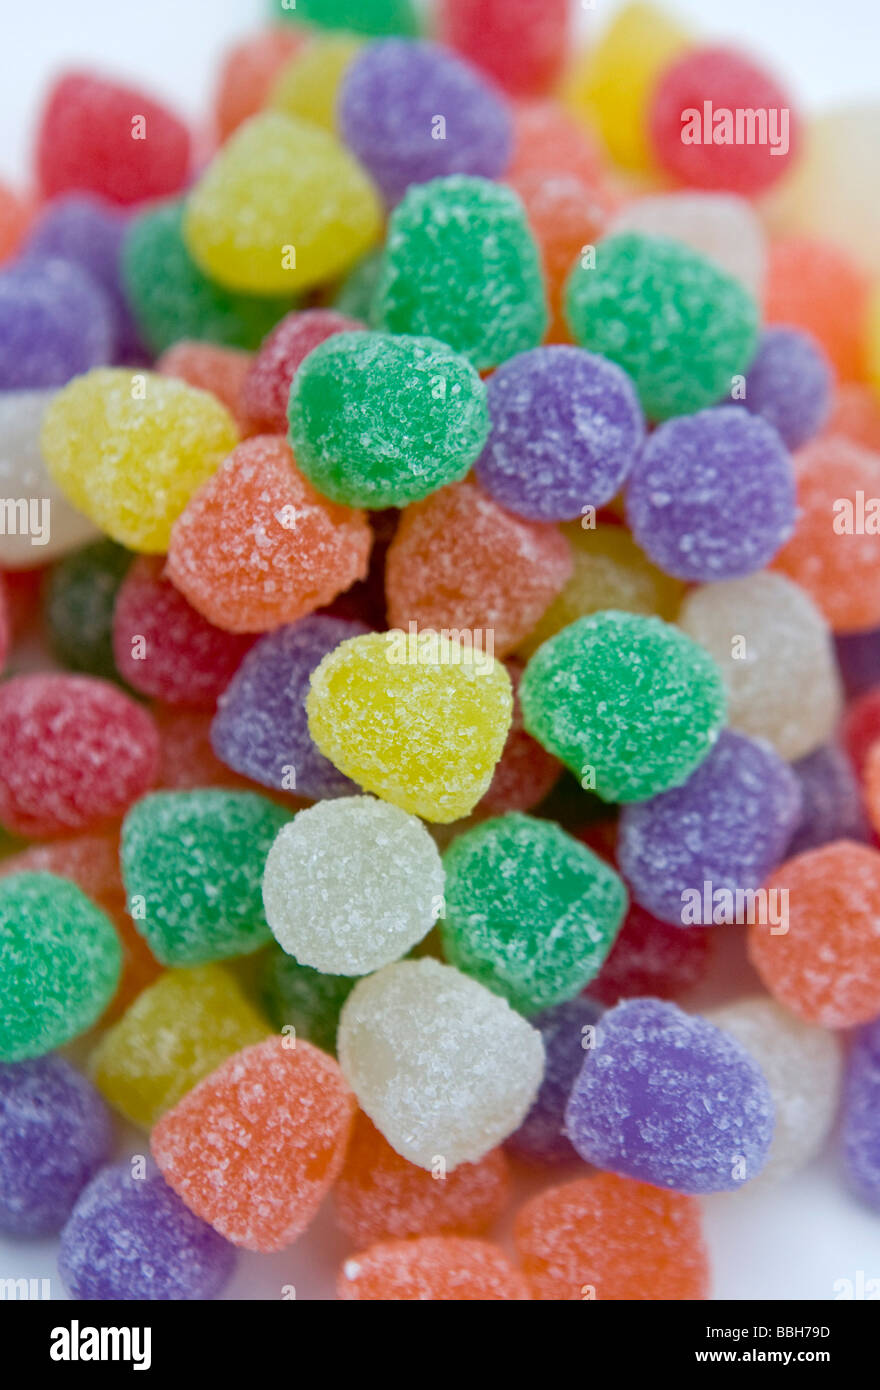 Gum Drops Candy sales in the US have remained strong despite an across the board increase in the price of candy - Stock Image